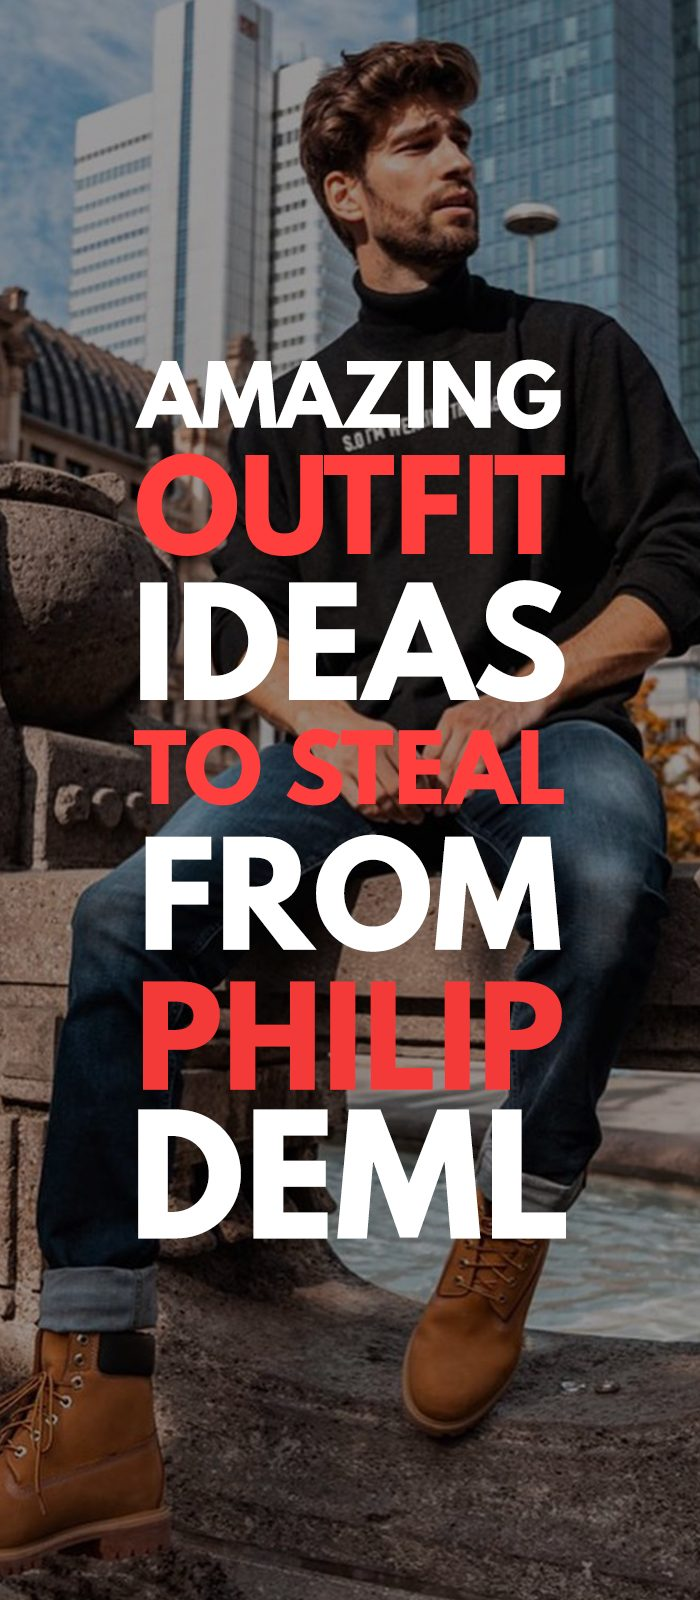 Outfit Ideas to steal from Philip Deml